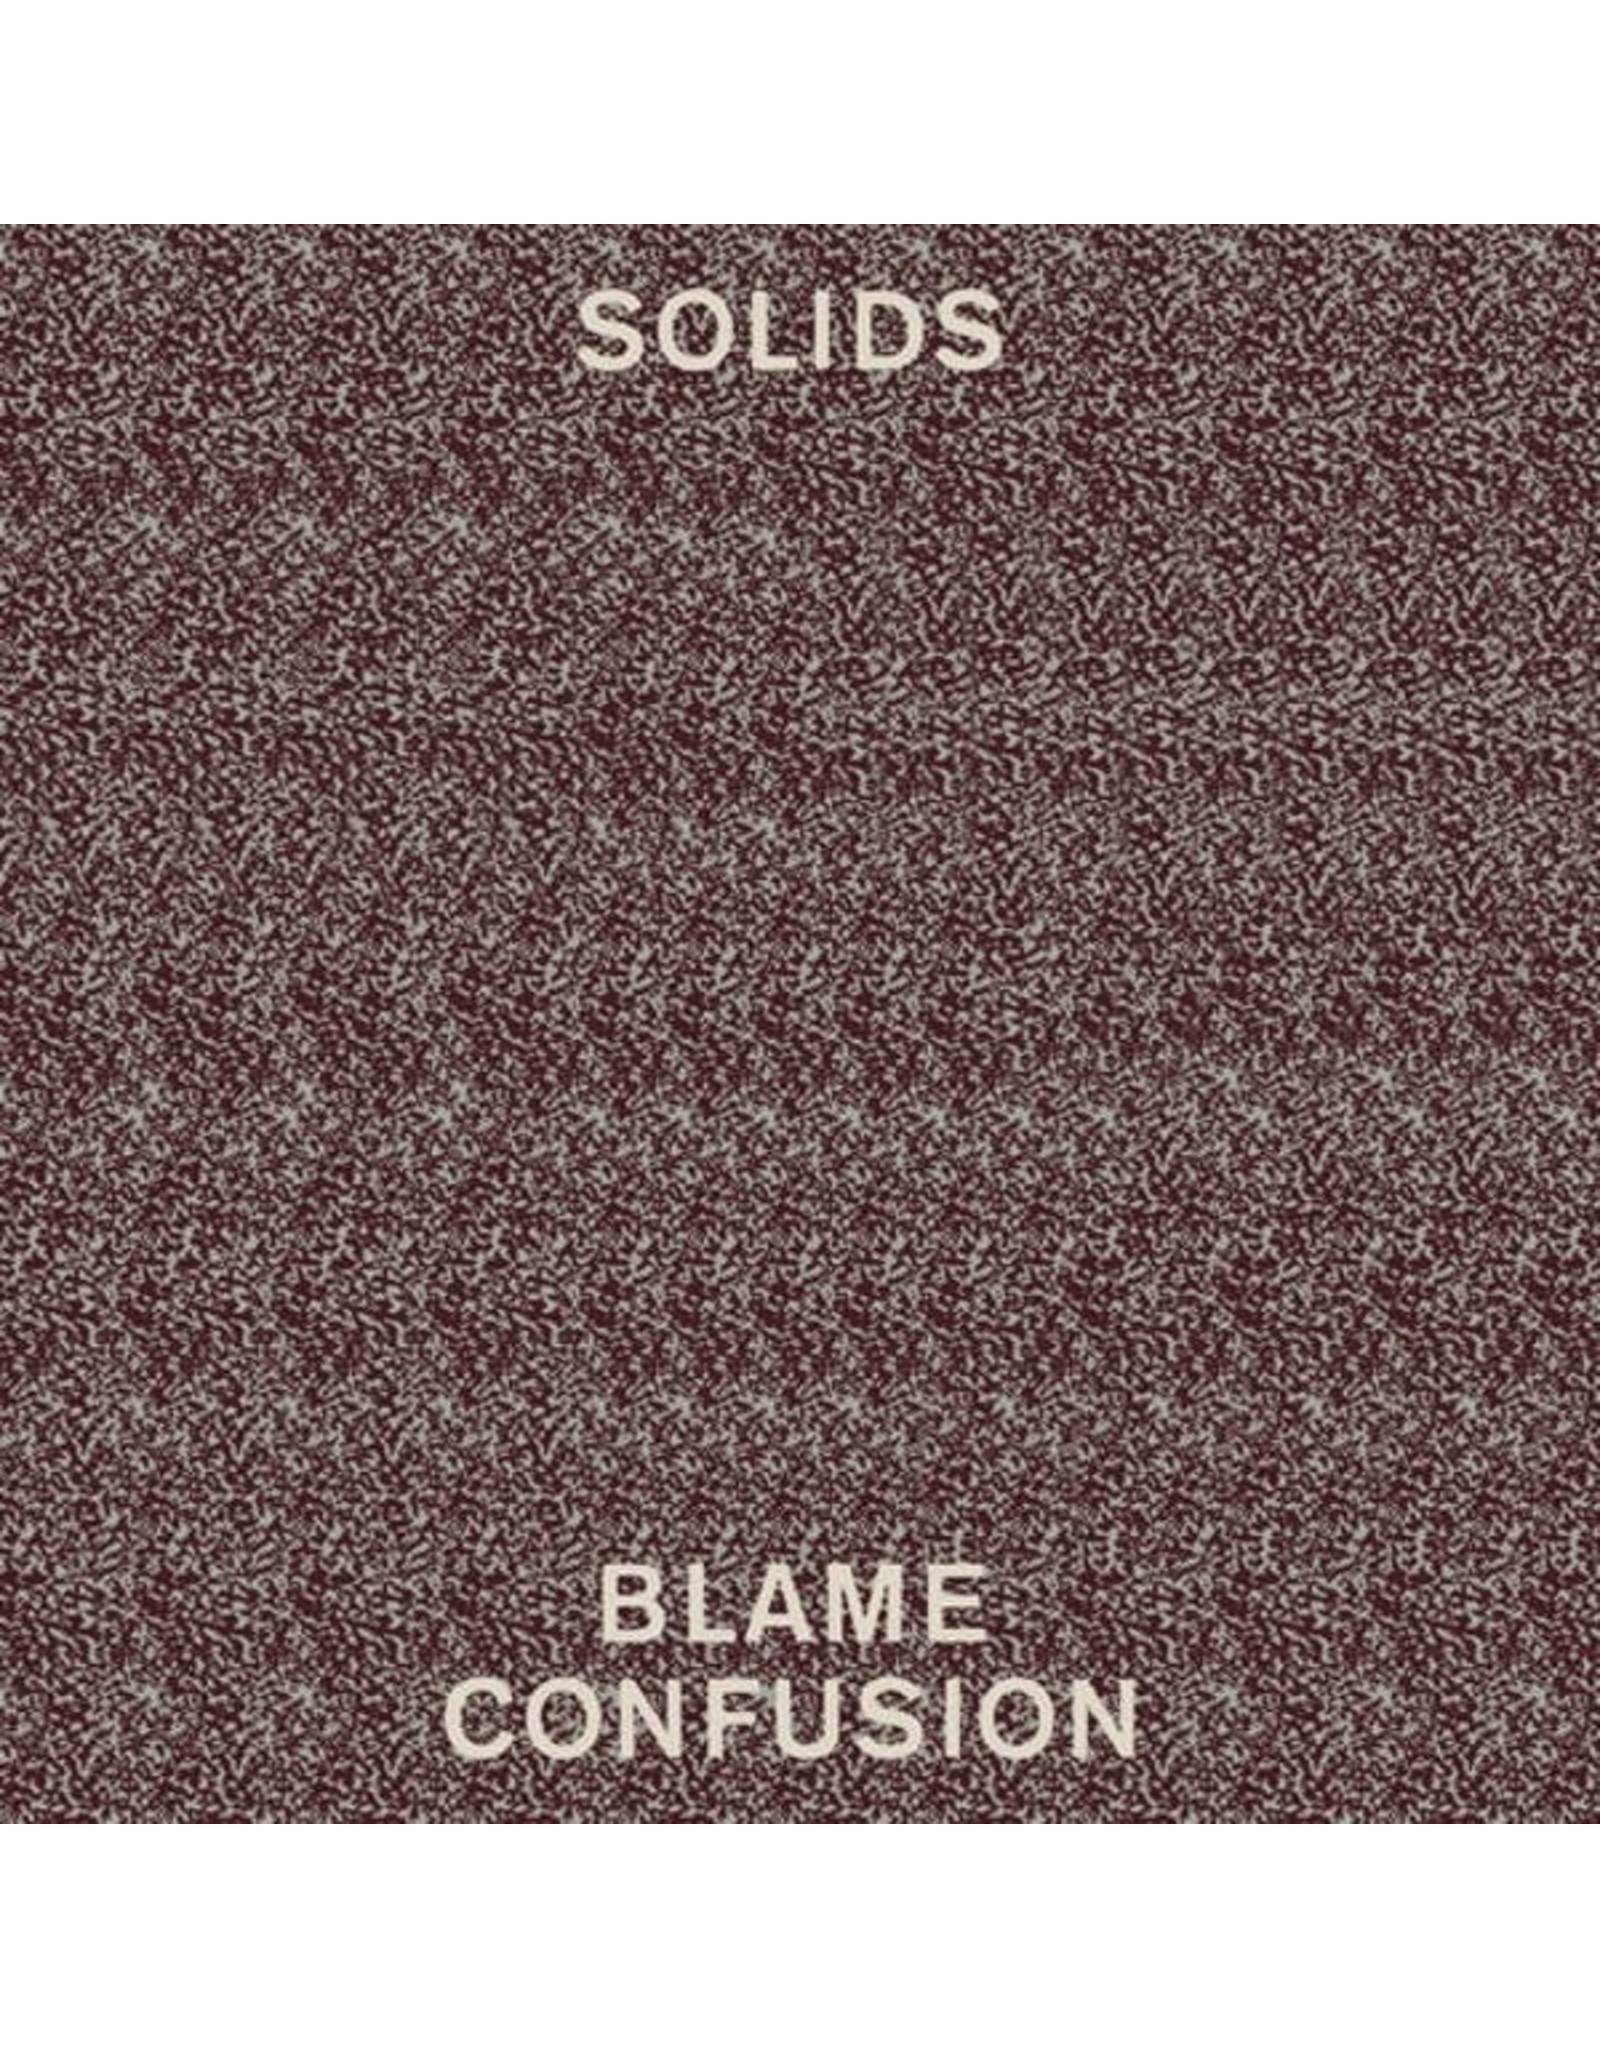 Solids - Blame Confusion CD